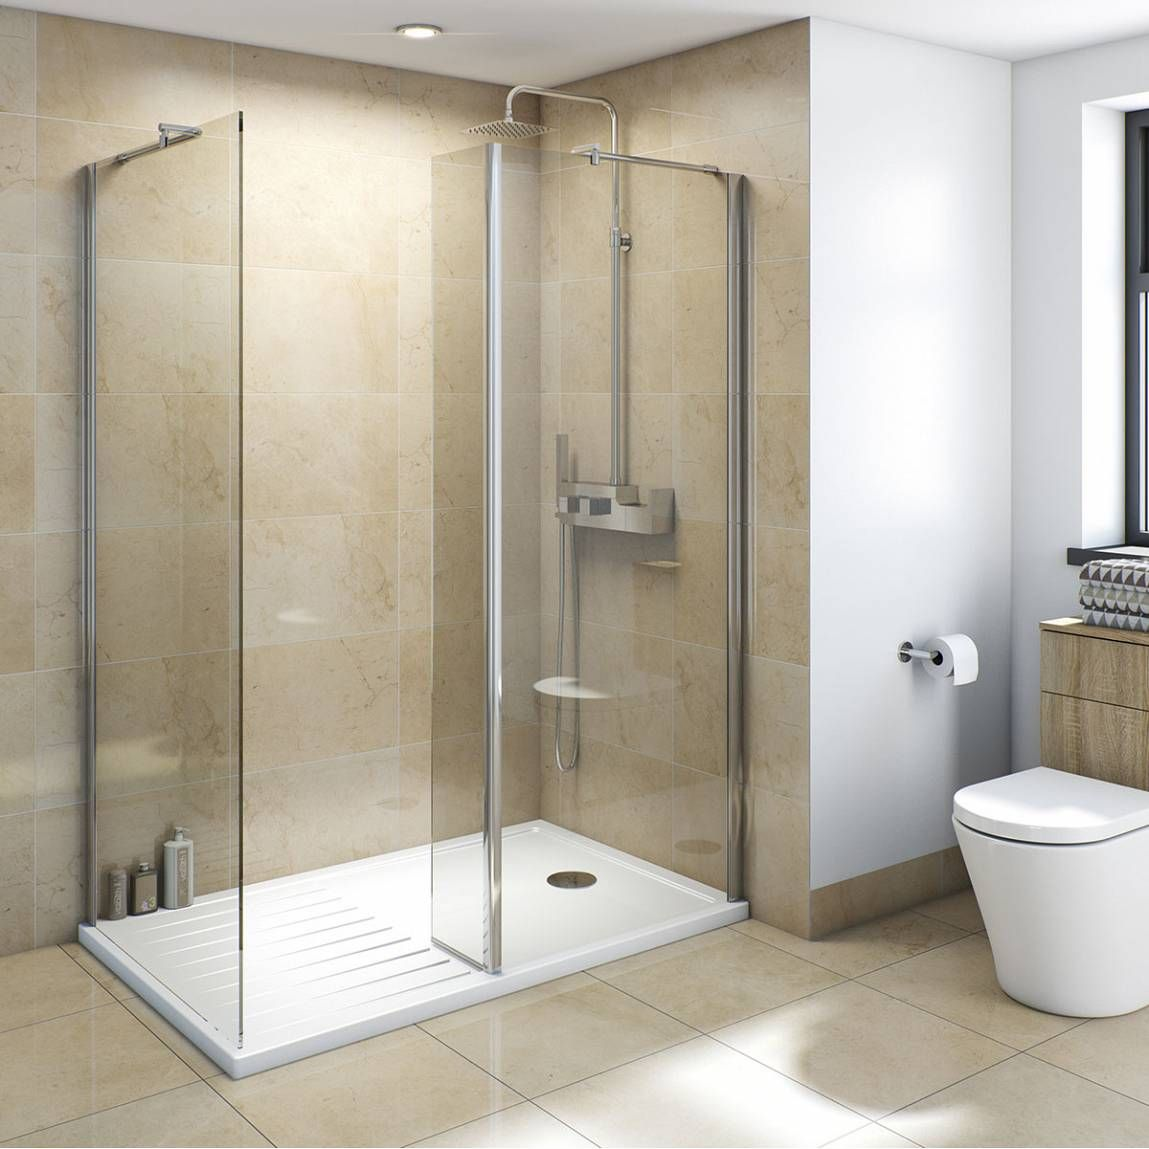 v8 walk in shower enclosure pack 1400 x 900 victoria plumb v8 walk in shower enclosure pack 1400 x 900 victoria plumb